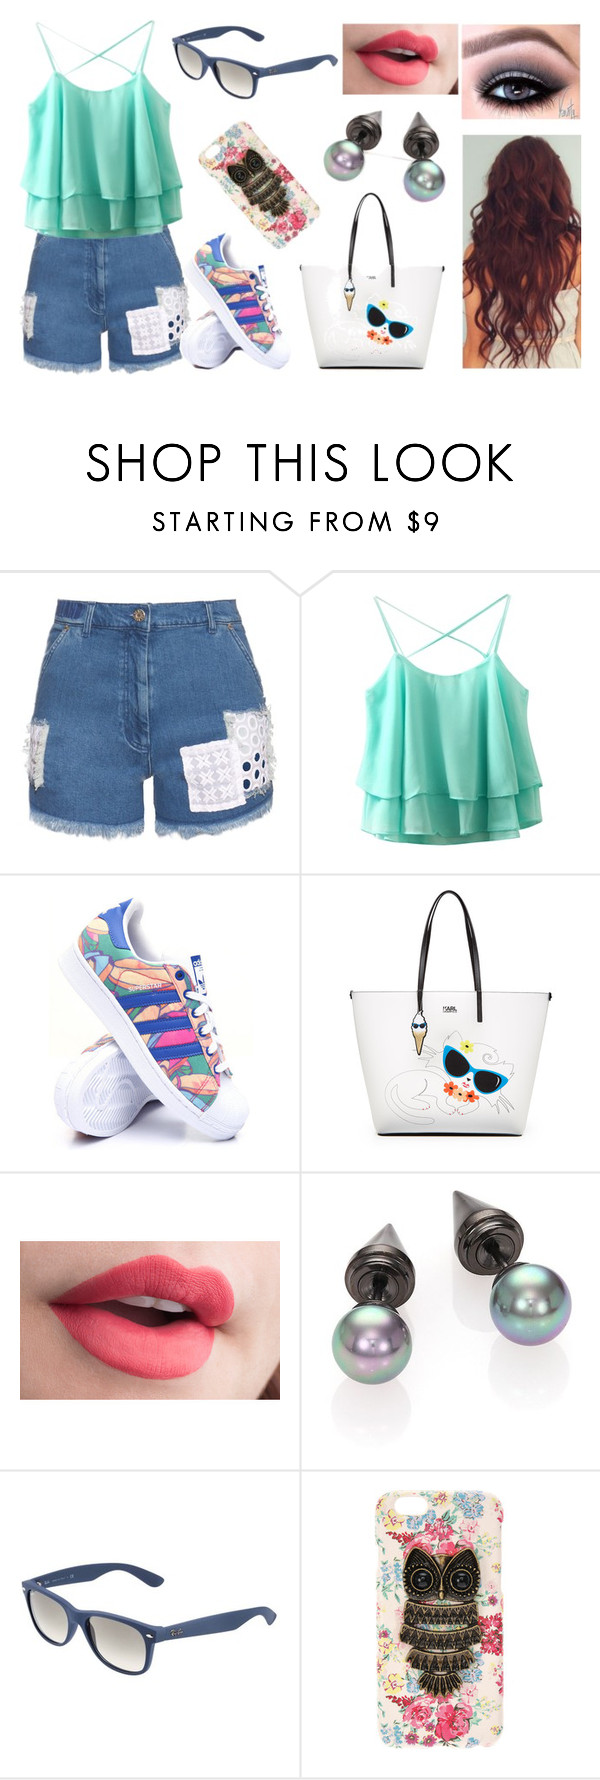 """""""In centro con Claudia"""" by nena69 ❤ liked on Polyvore featuring House of Holland, adidas, Karl Lagerfeld, Majorica and Ray-Ban"""